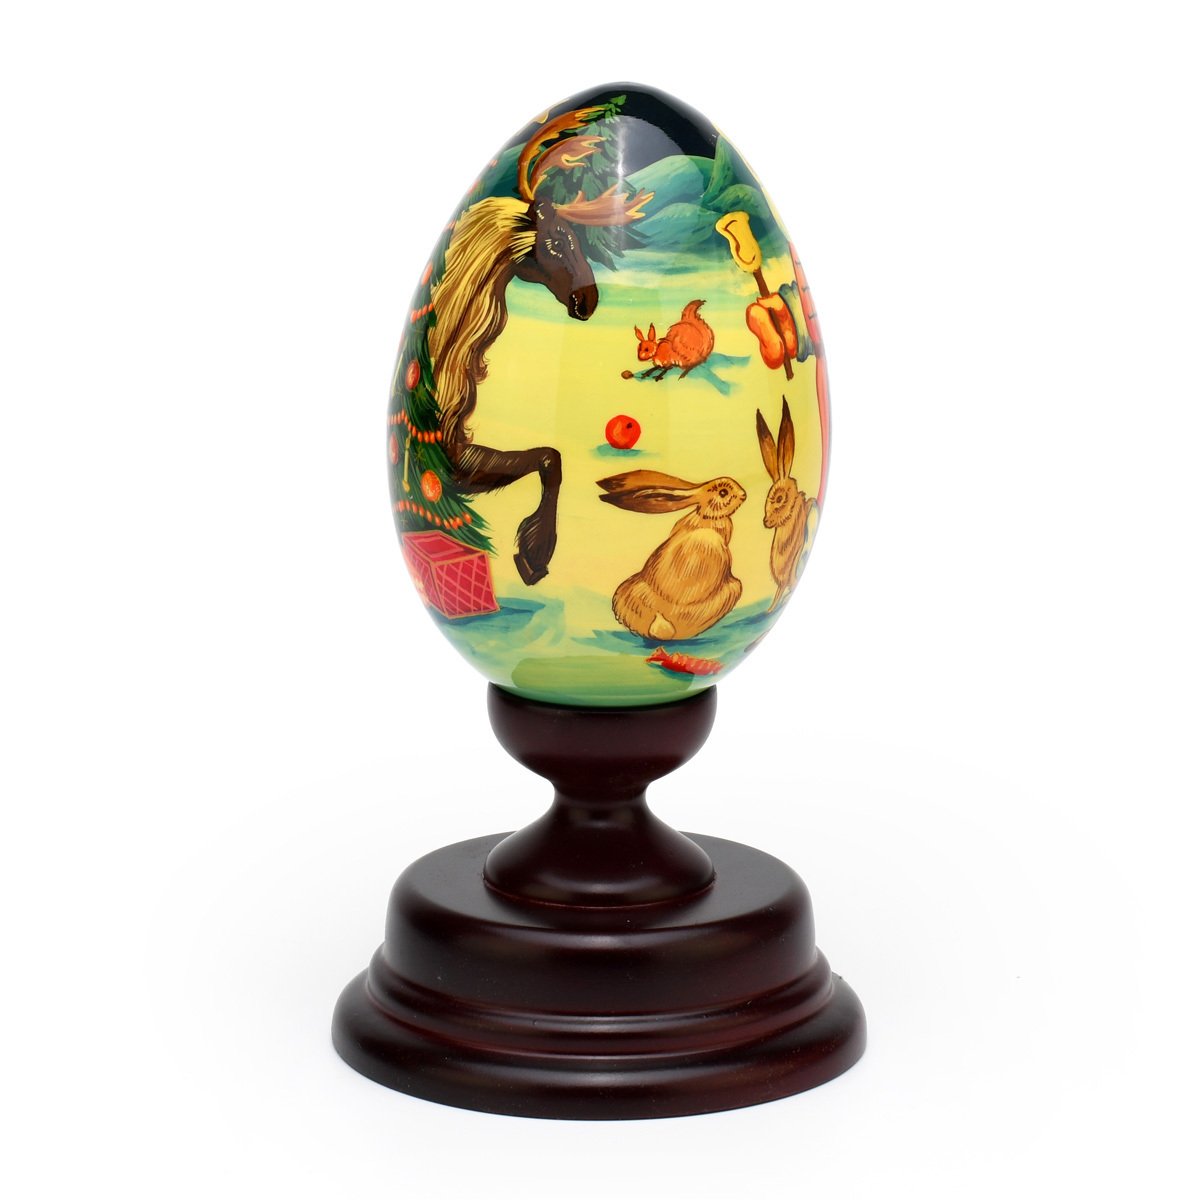 Limited Edition Reuge Hand-Painted Russian Egg with Holiday Christmas Theme